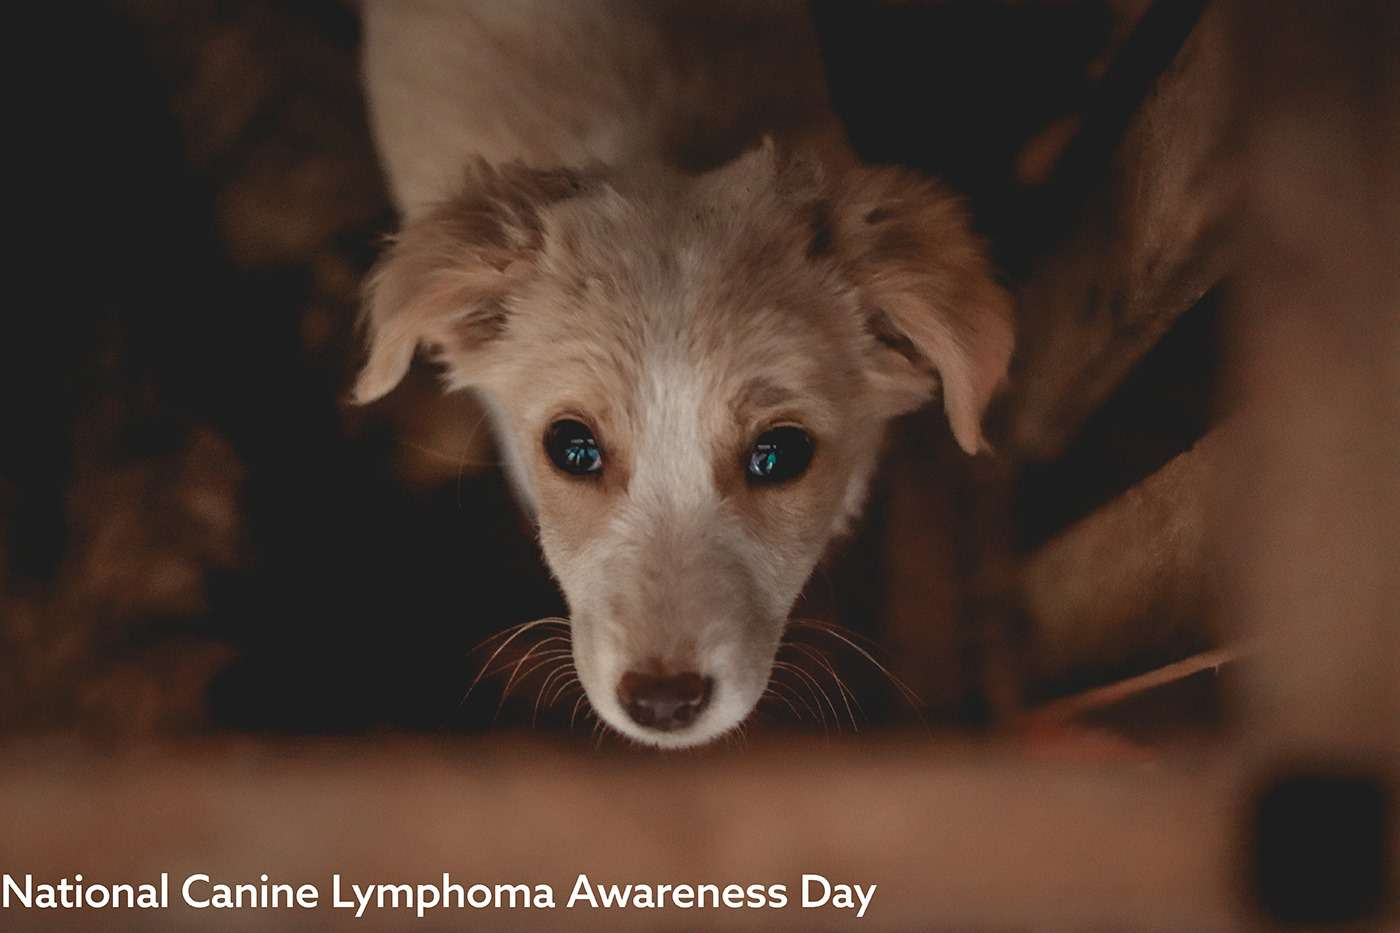 National Canine Lymphoma Awareness Day Wishes Awesome Images, Pictures, Photos, Wallpapers